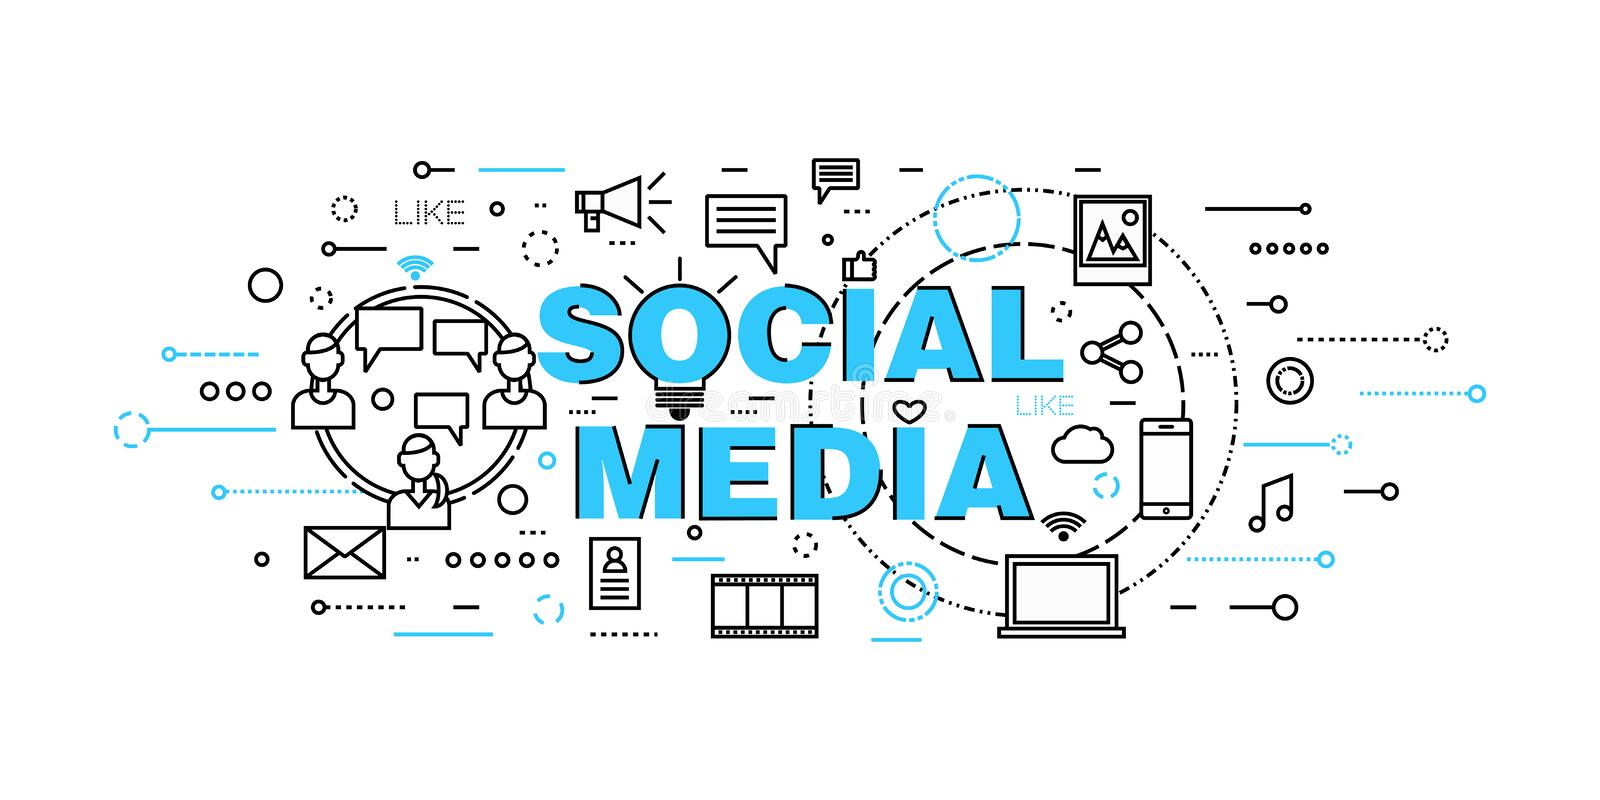 Modern flat thin line design vector illustration, concept of social media, social networking, web communtity and posting news. For graphic and web design royalty free illustration